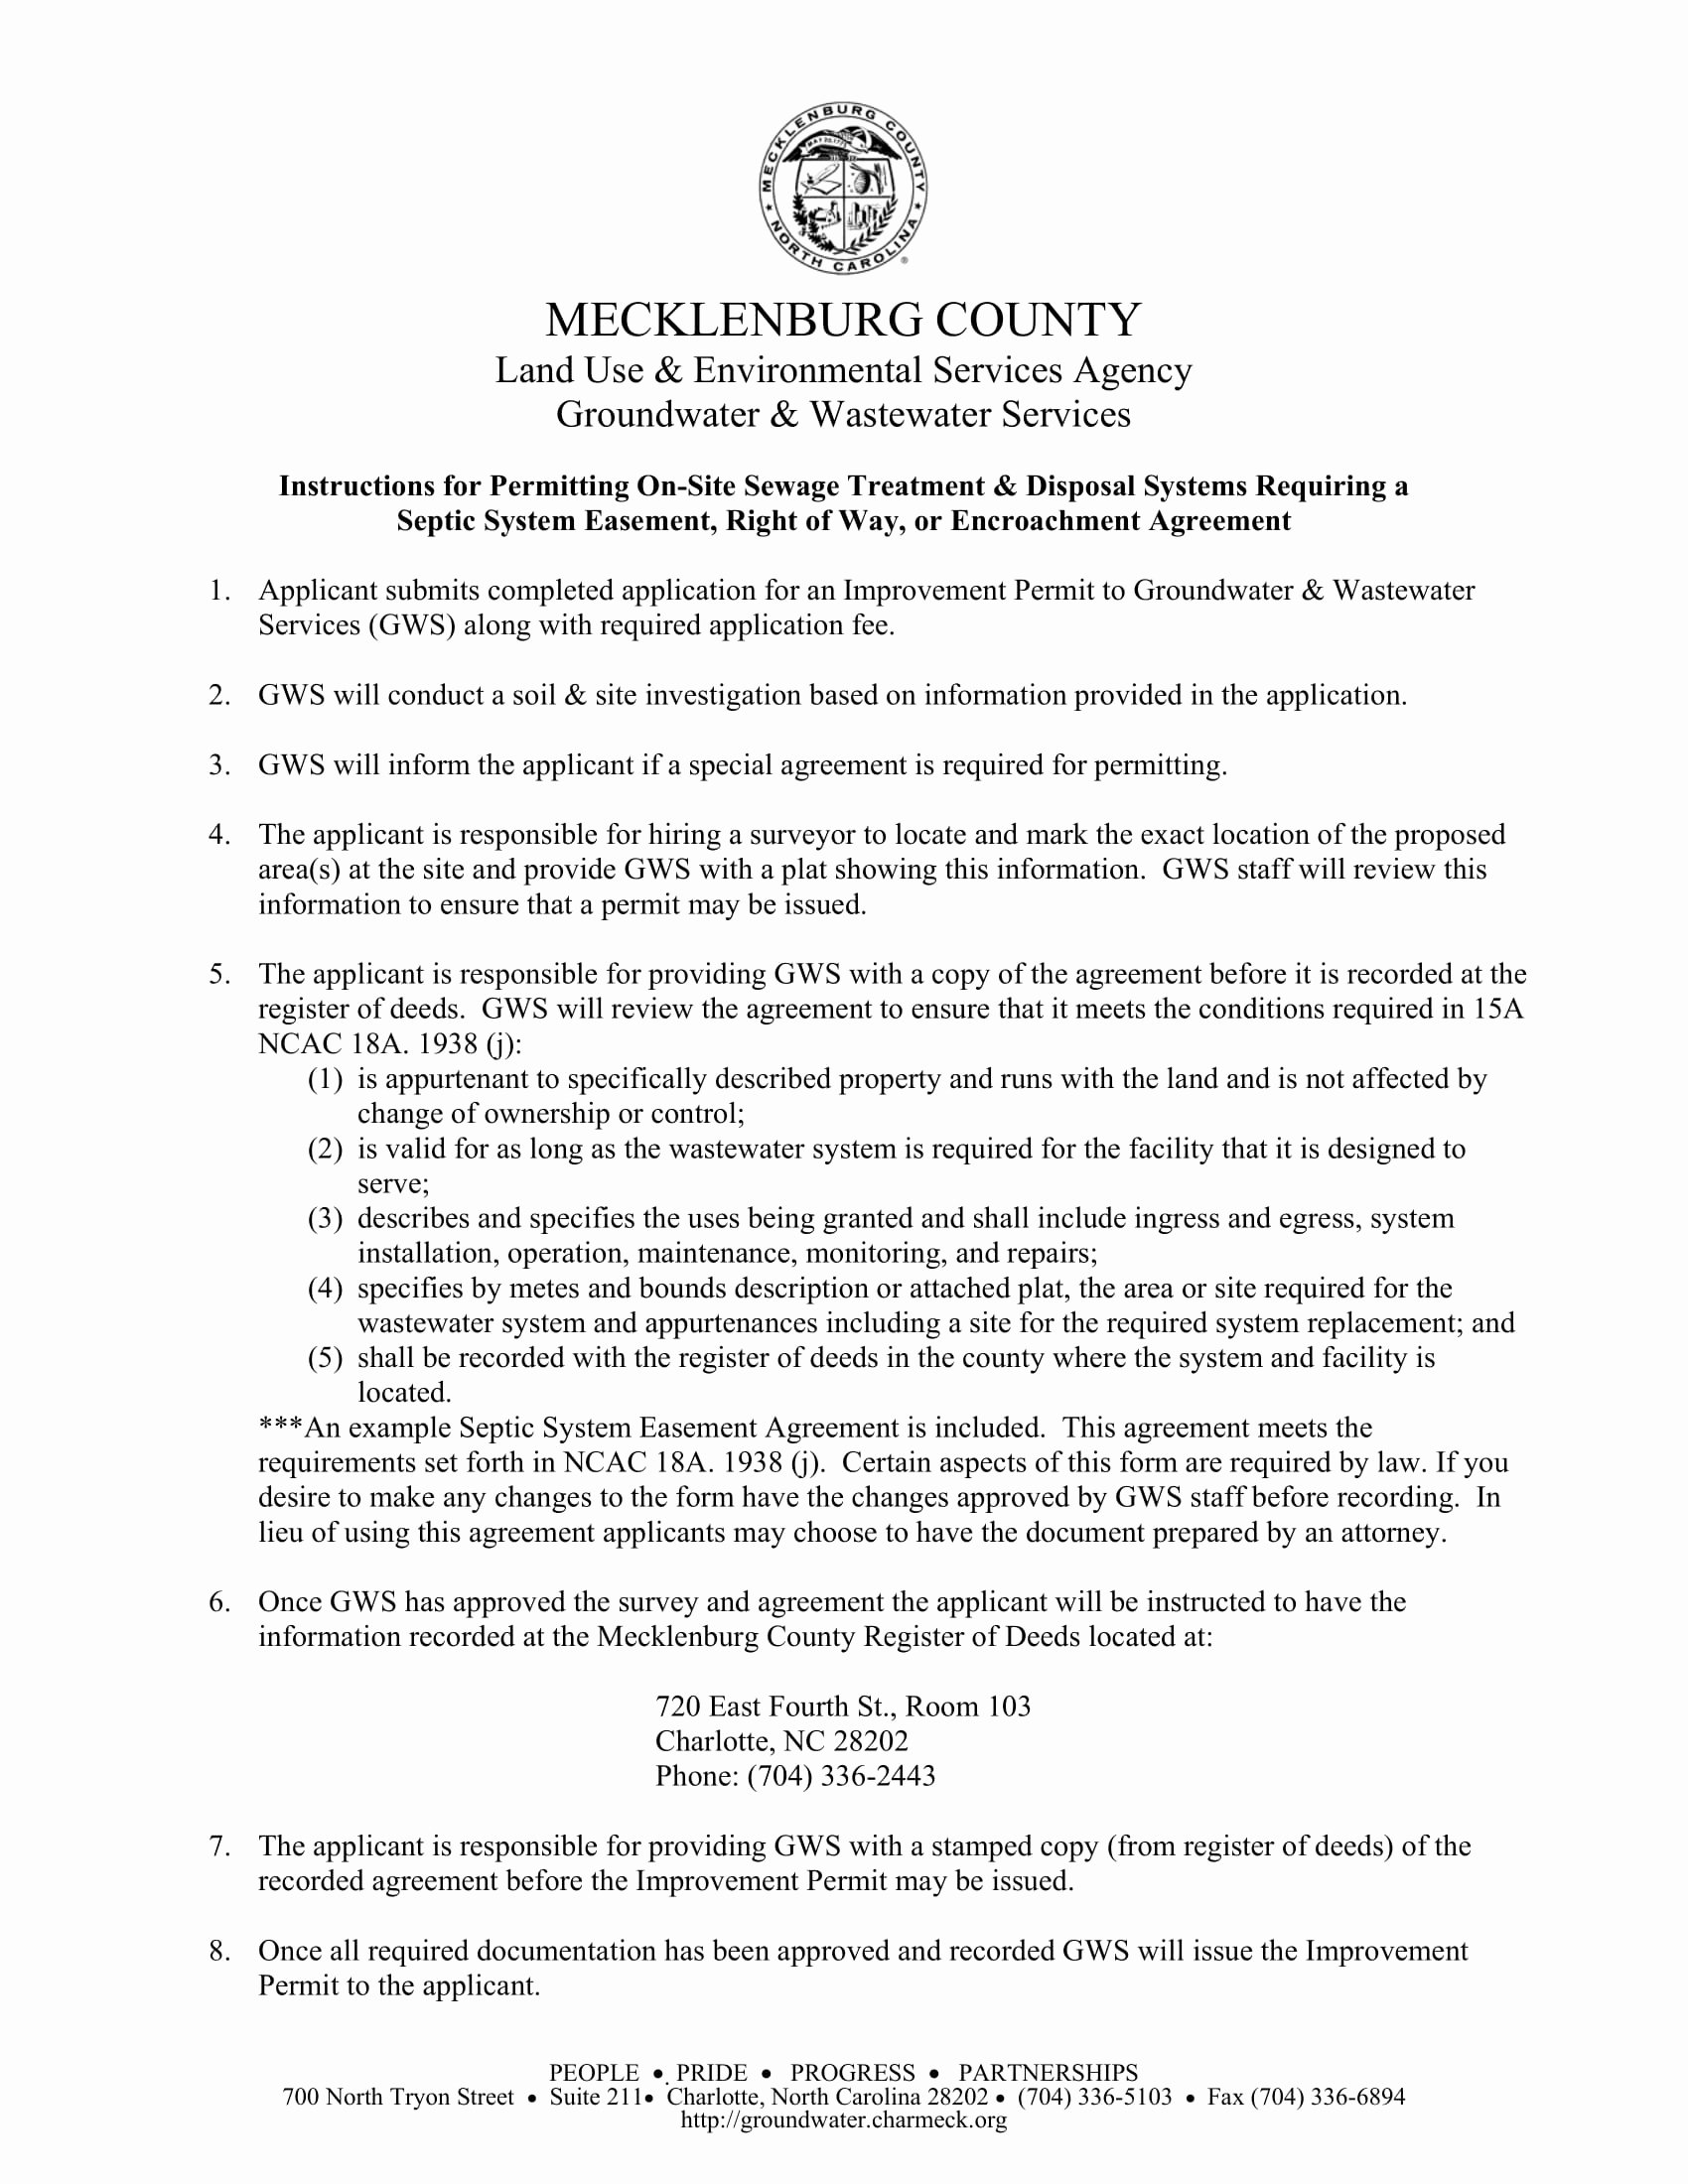 Driveway Easement Agreement Beautiful 10 Easement Agreement Contract forms Pdf